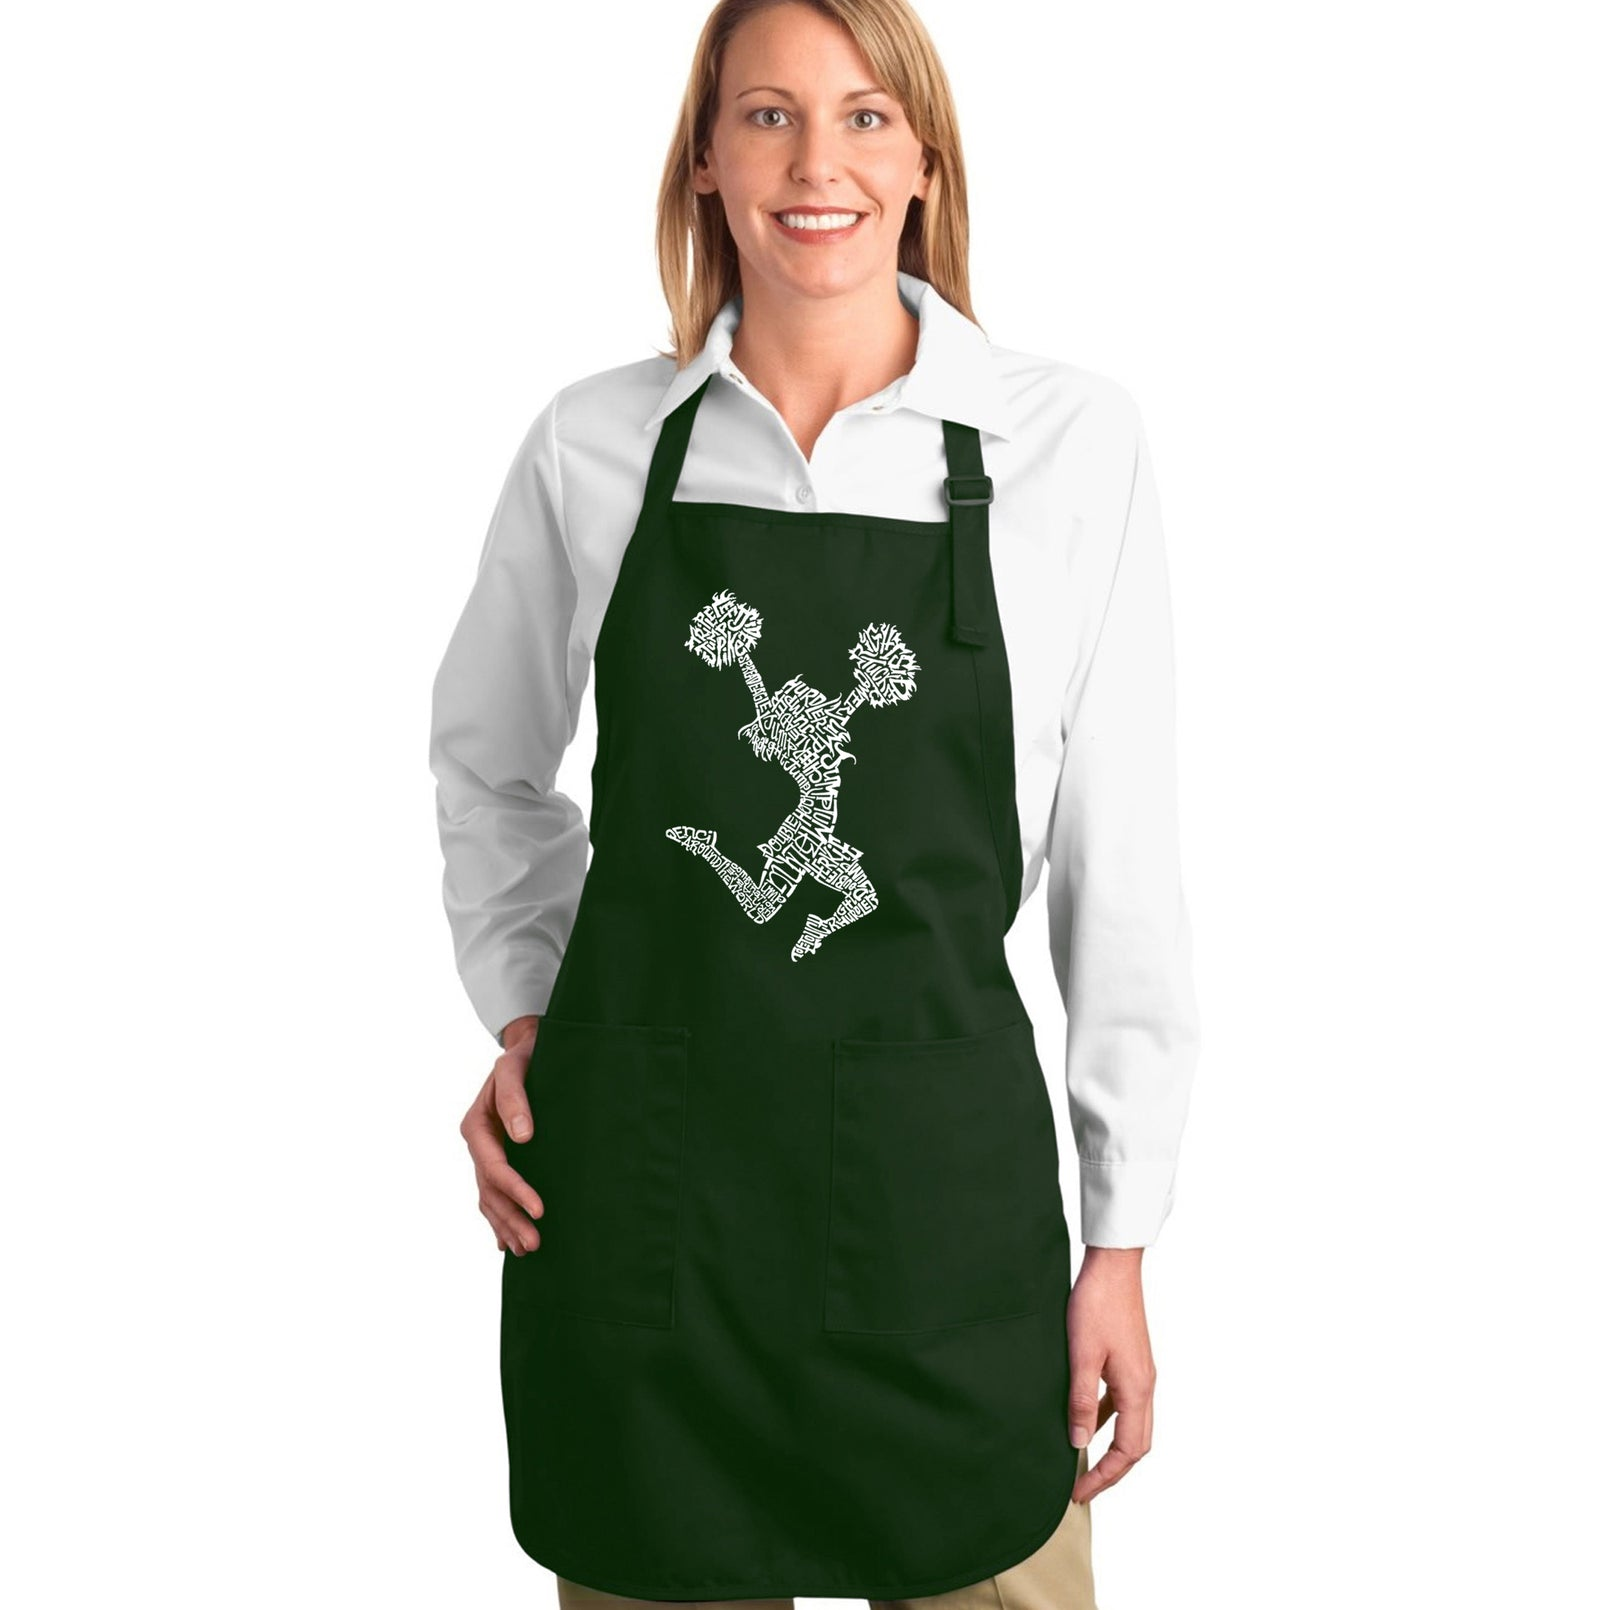 LA Pop Art Full Length Word Art Apron - Cheer